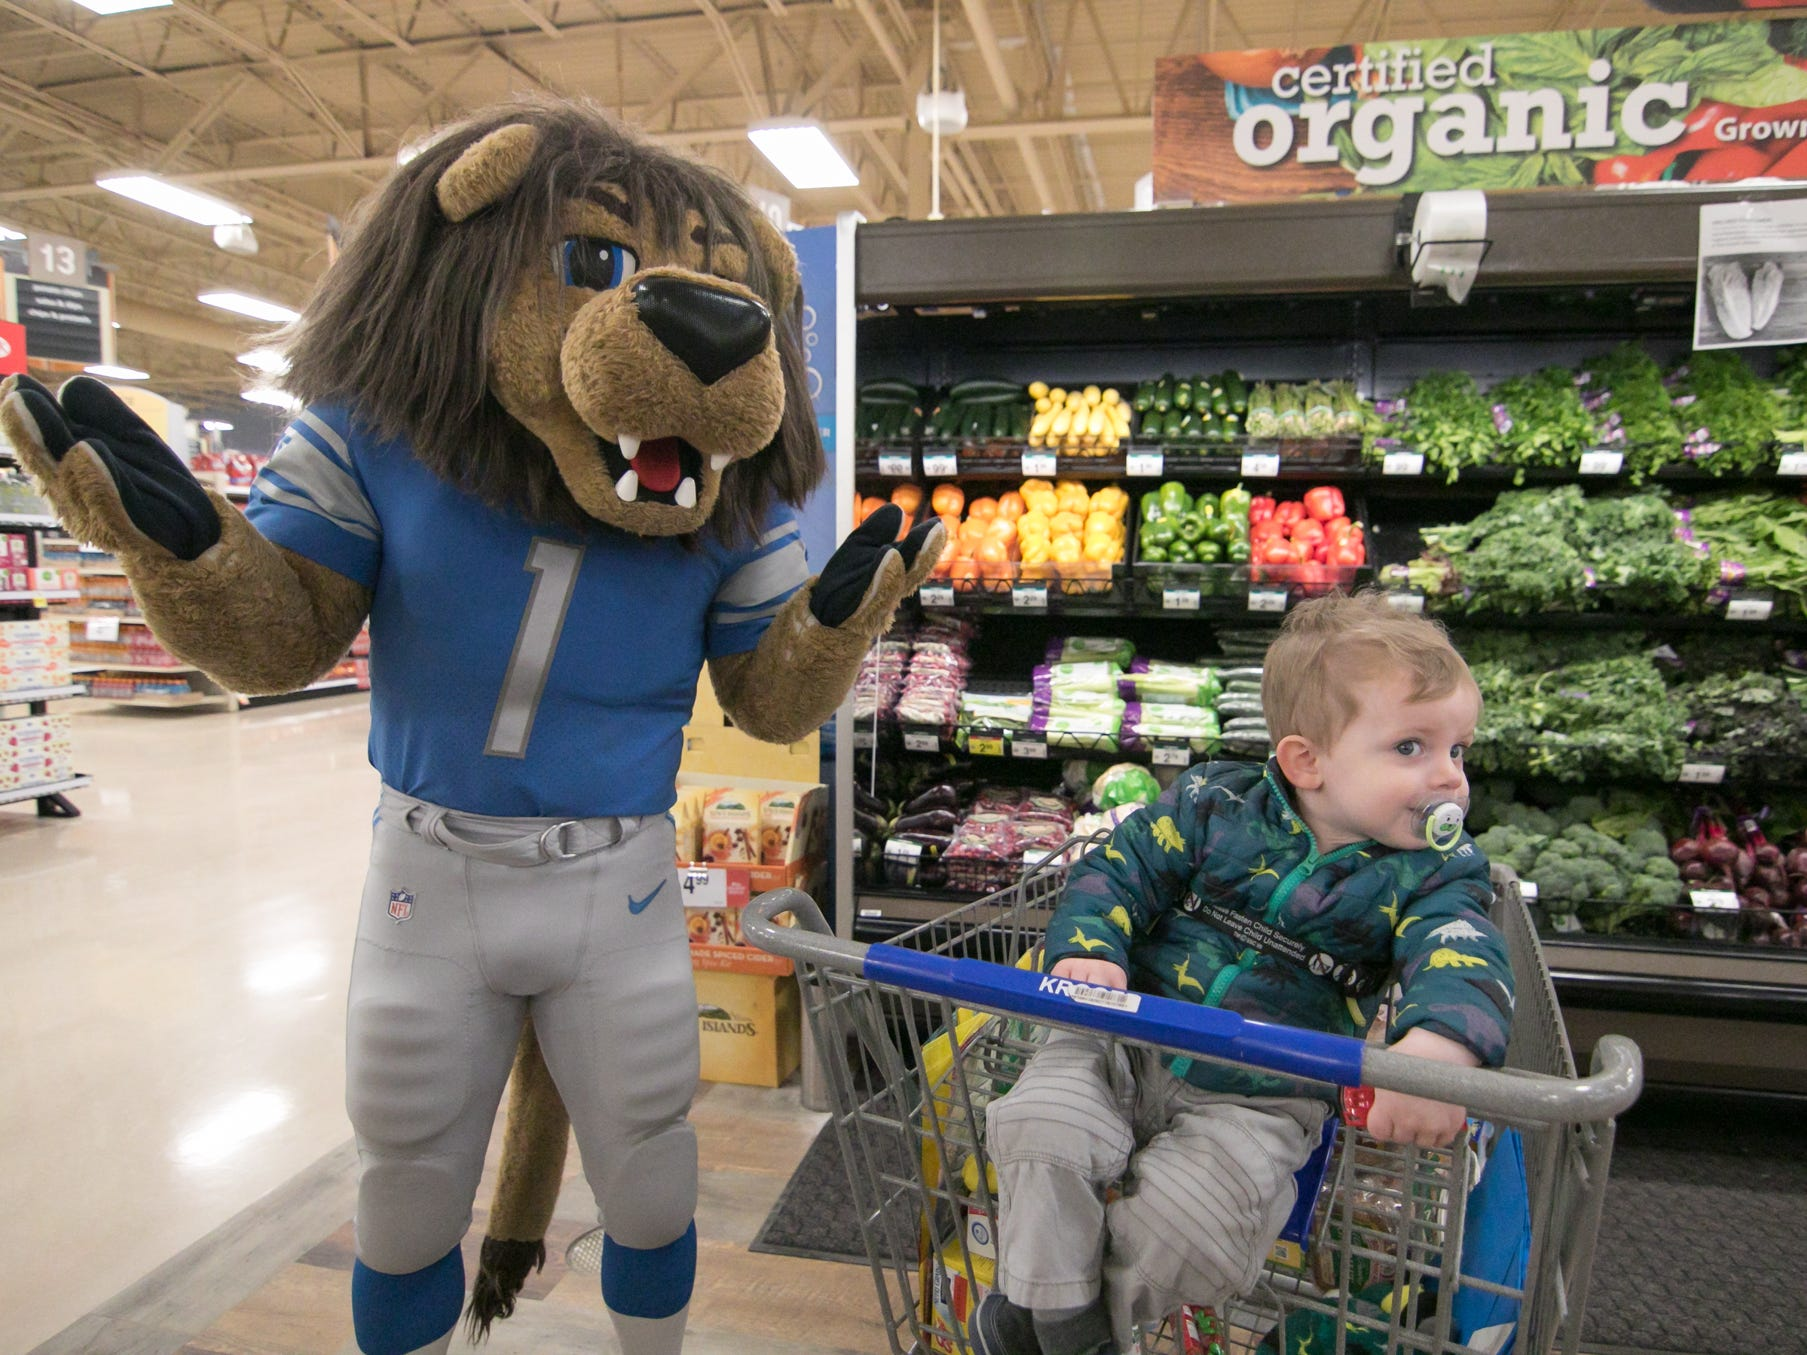 Detroit Lions mascot Roary couldn't hold the gaze of 23-month-old Wylan Zmikly at the expansion celebration of the Brighton Kroger store Wednesday, Dec. 5, 2018.